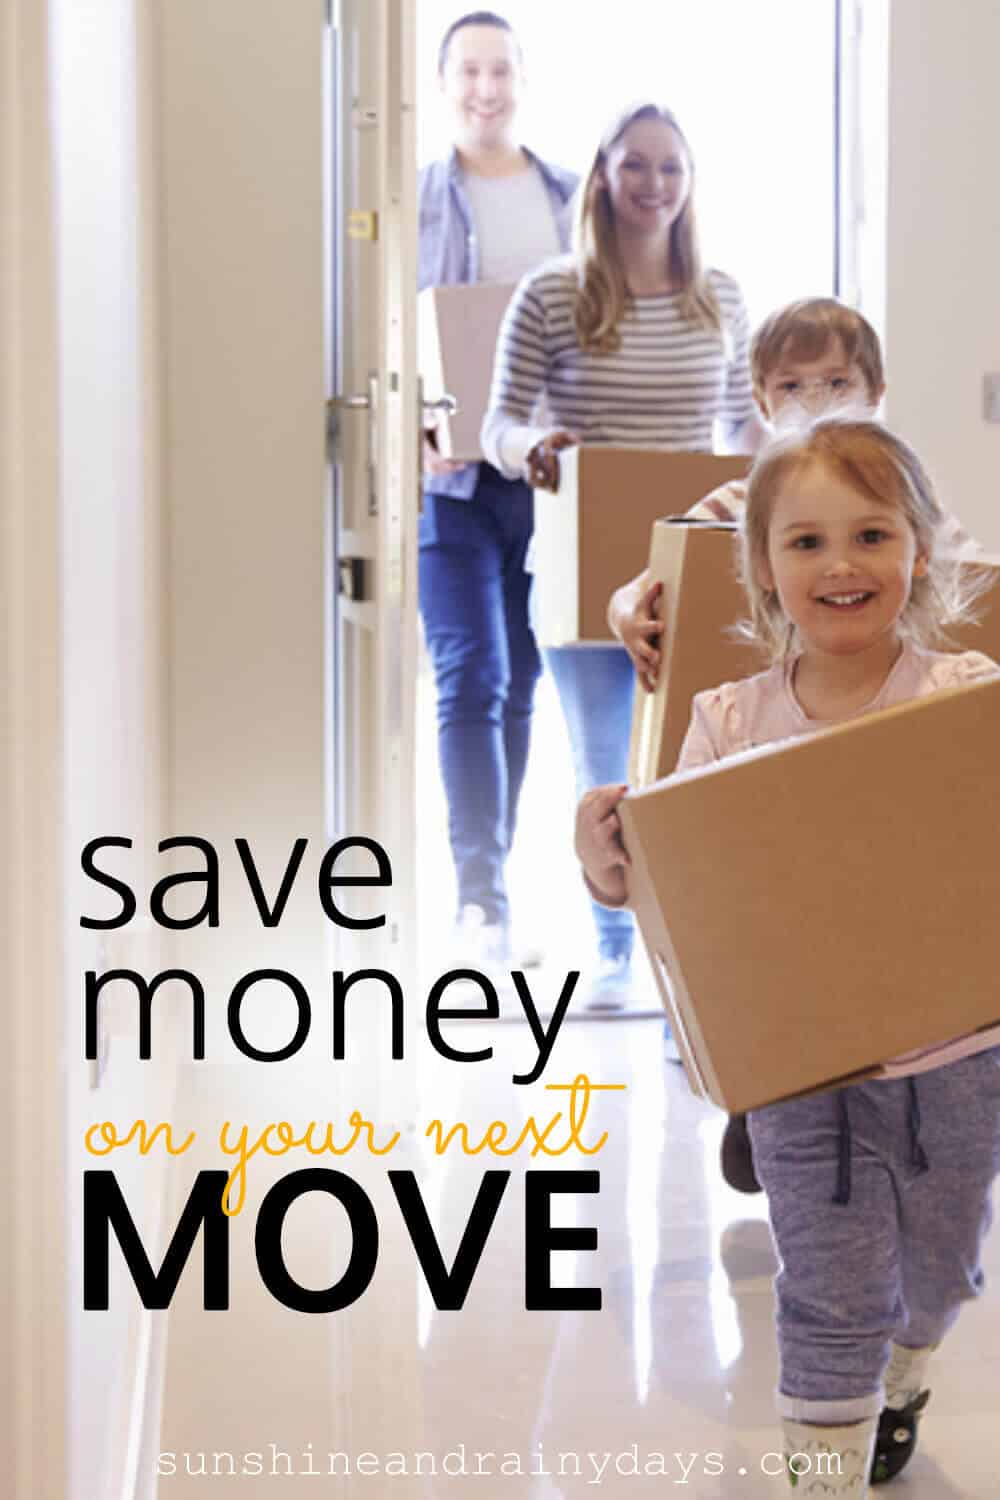 Great tips on how to save money on a local move!